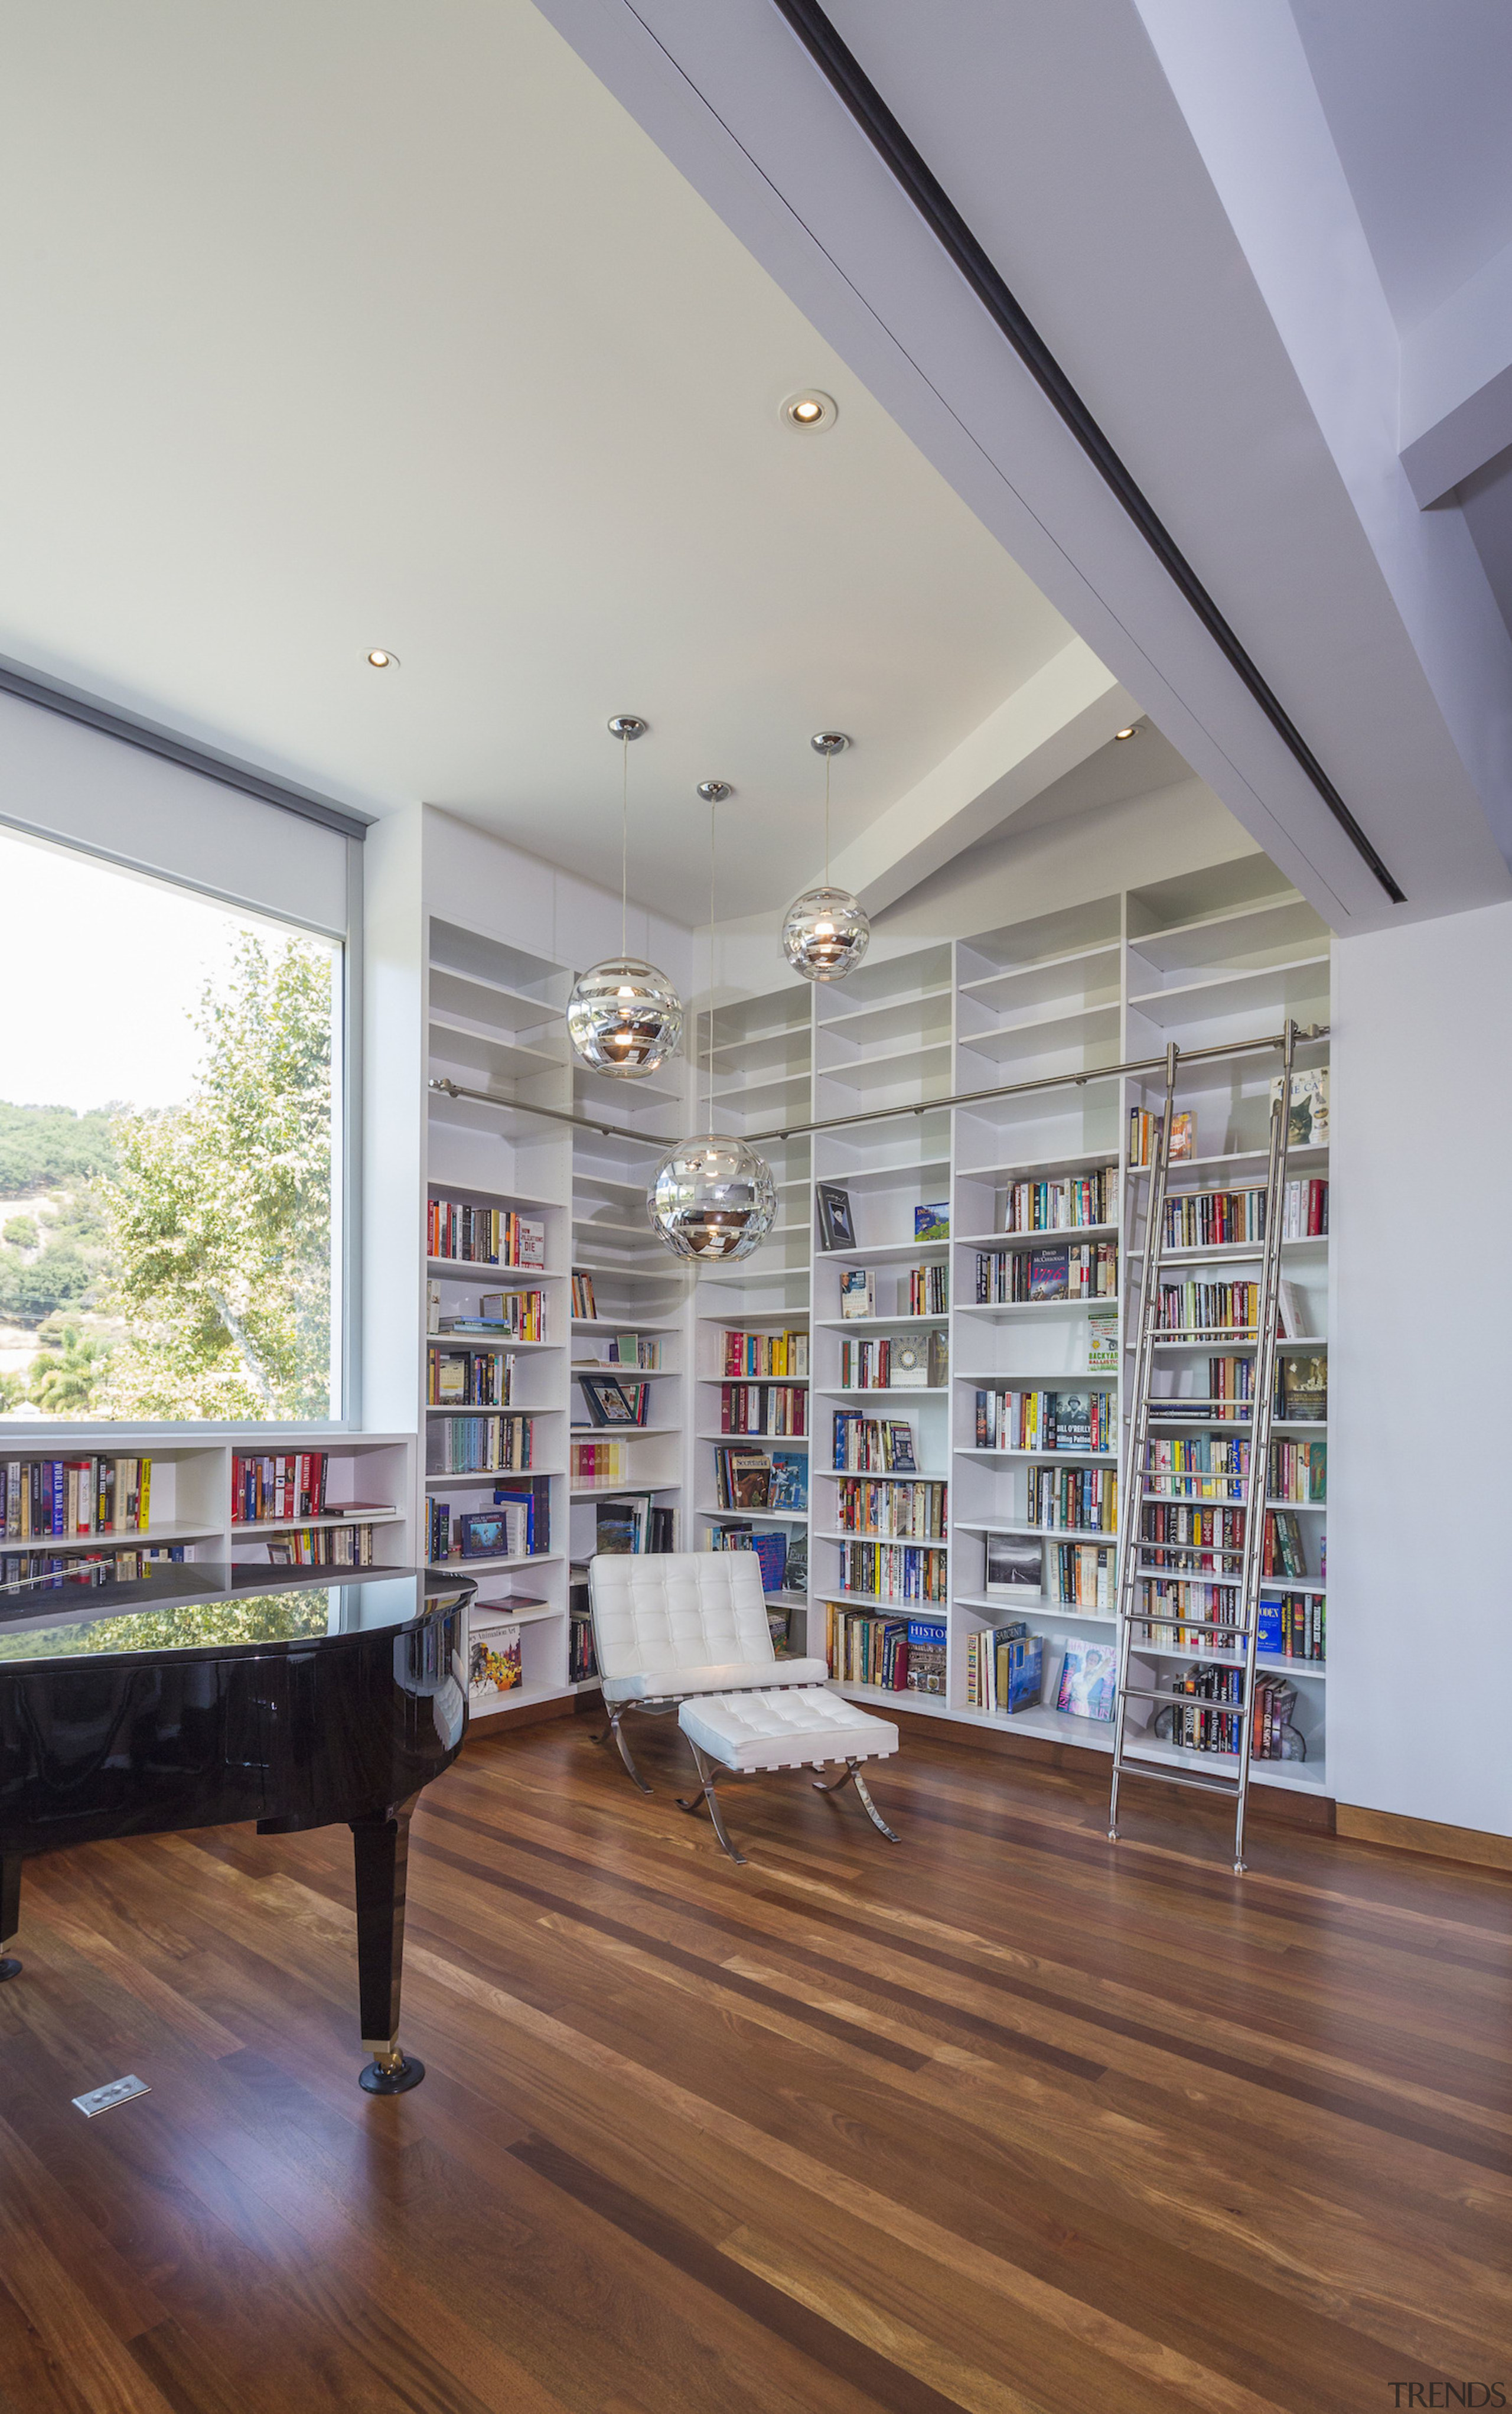 Anx View 21 - architecture | ceiling | architecture, ceiling, daylighting, floor, flooring, interior design, library, loft, public library, shelving, gray